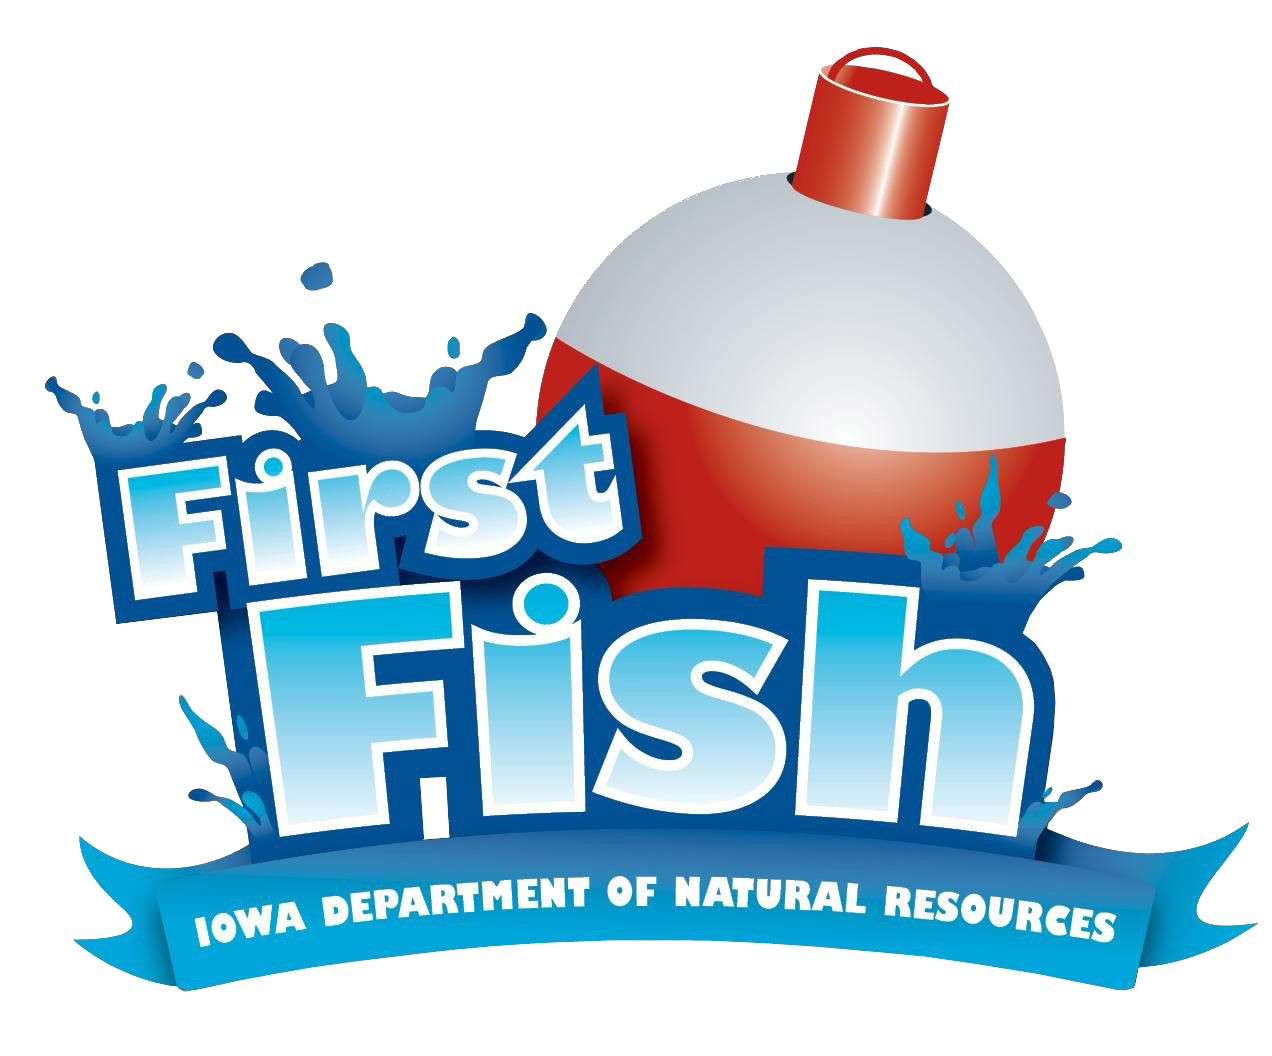 First fish entries hope. Fishing clipart youth